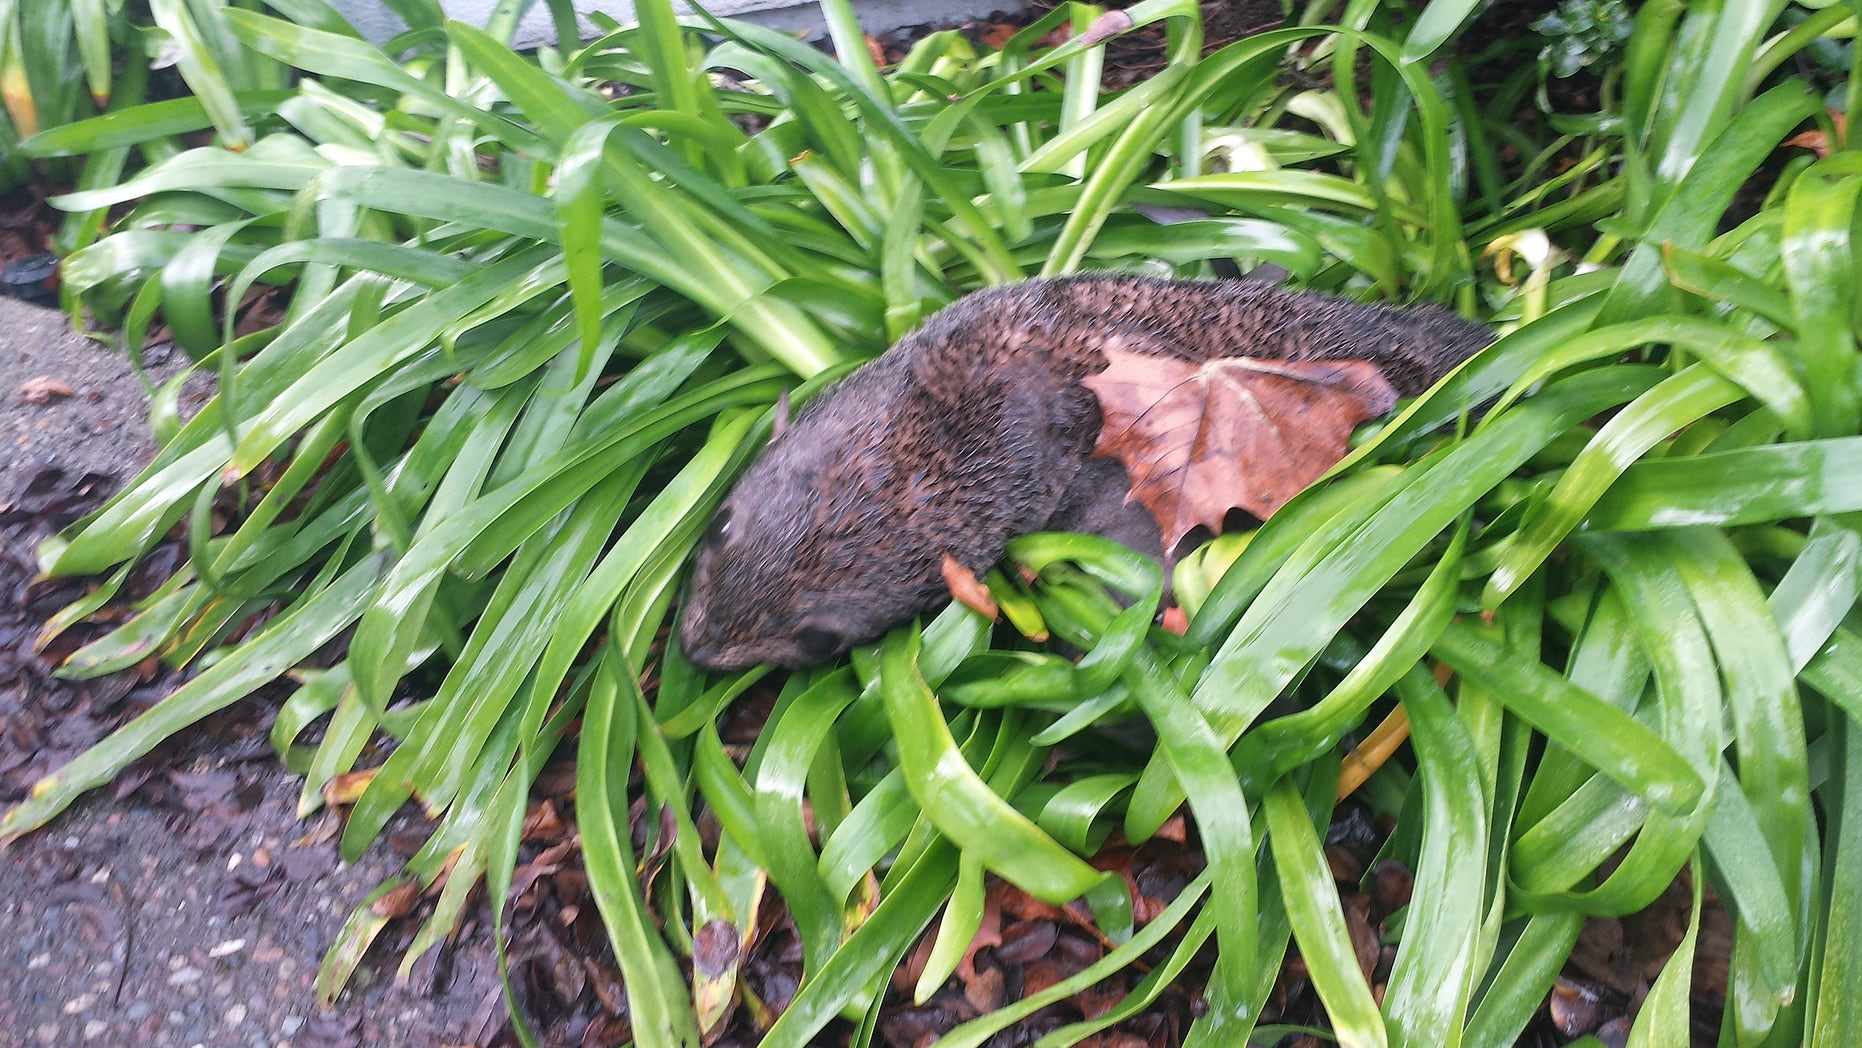 This photo provided by the Marine Mammal Center shows an emaciated baby northern fur seal that was found in some bushes Wednesday, Jan. 20, 2016, at a business park in Hayward, Calif. Hayward police said that the dehydrated and malnourished seal was found after someone called about the pup around 6 a.m. Wednesday. Police say the seal somehow got out of the water, crossed busy Interstate 880 and found its way to the bushes. The Marine Mammal Center in Sausalito picked up the animal, which they hope to nourish and send back into the wild as soon as possible. (Marine Mammal Center via AP)